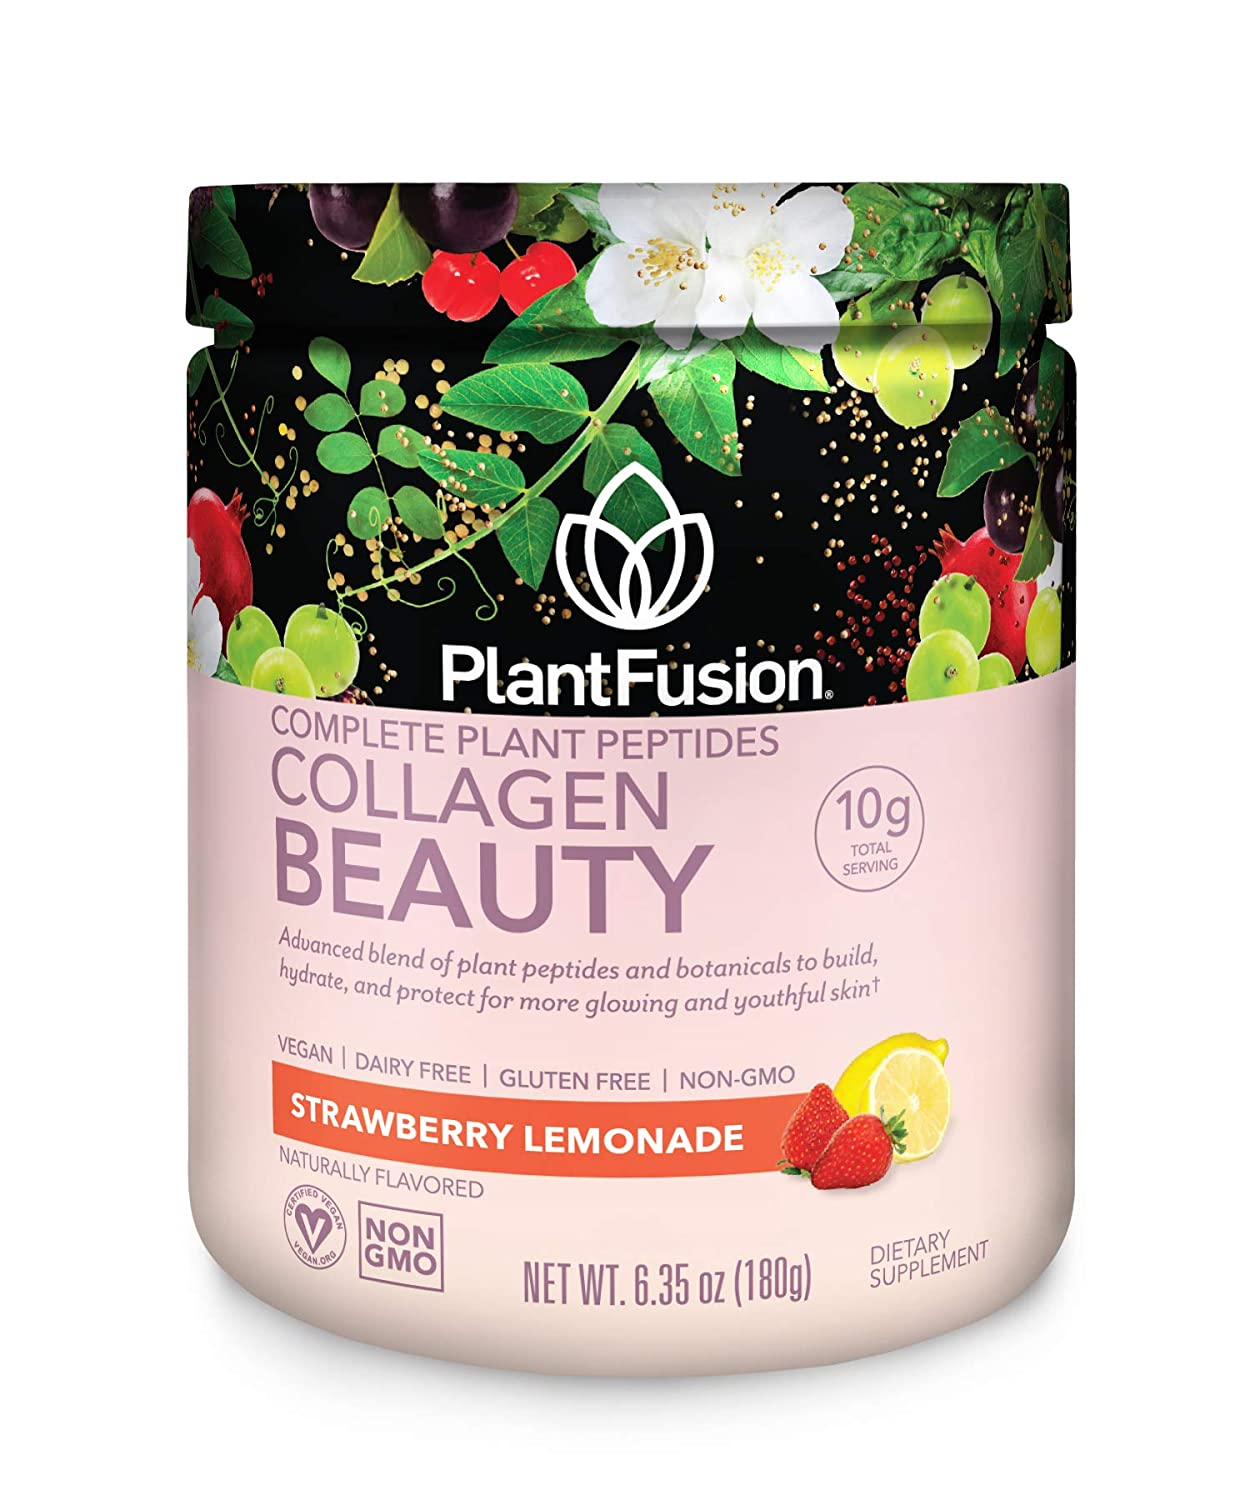 PlantFusion Collagen Beauty Plant Peptides Powder | Vegan Collagen Supplement for Skin Hydration, Elasticity, and More Glowing and Youthful Skin| Gluten-Free, Non-GMO | Strawberry Lemonade, 6.35 Oz